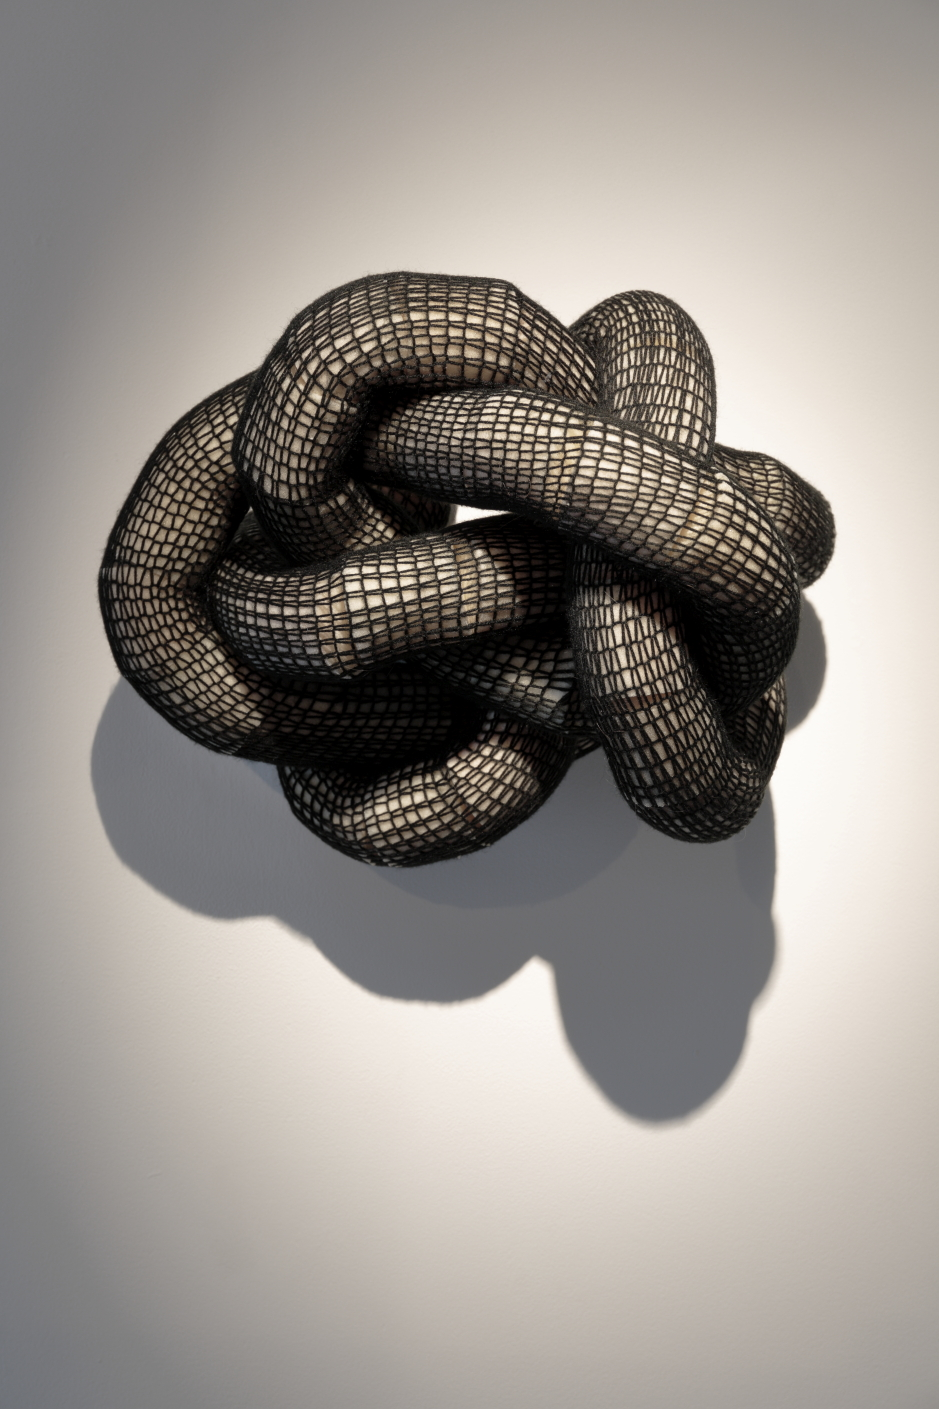 Knot Work 3